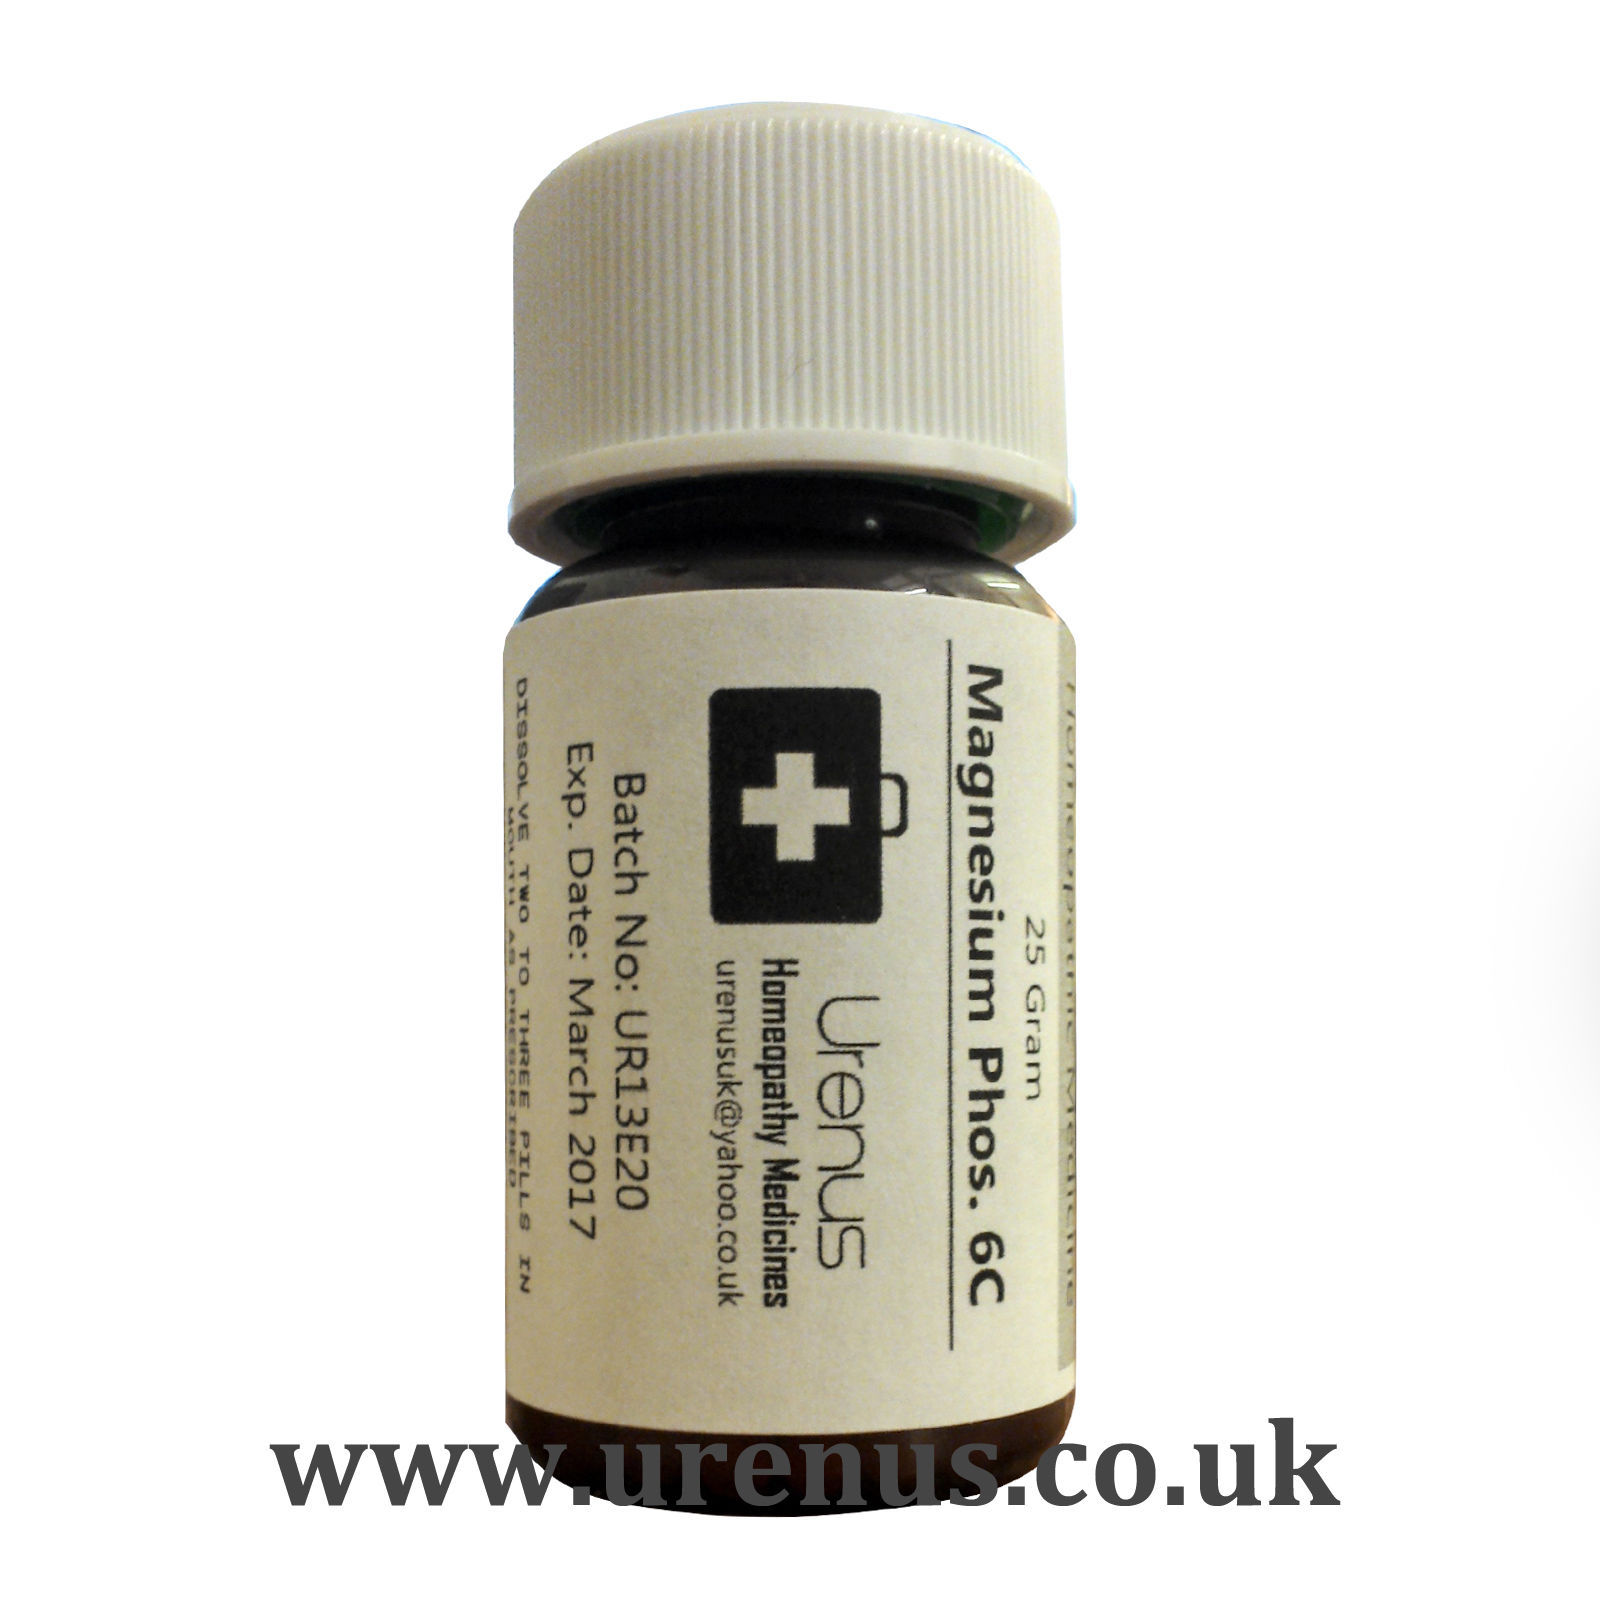 7 gram Homeopathic Remedy/Medicine and 50 similar items